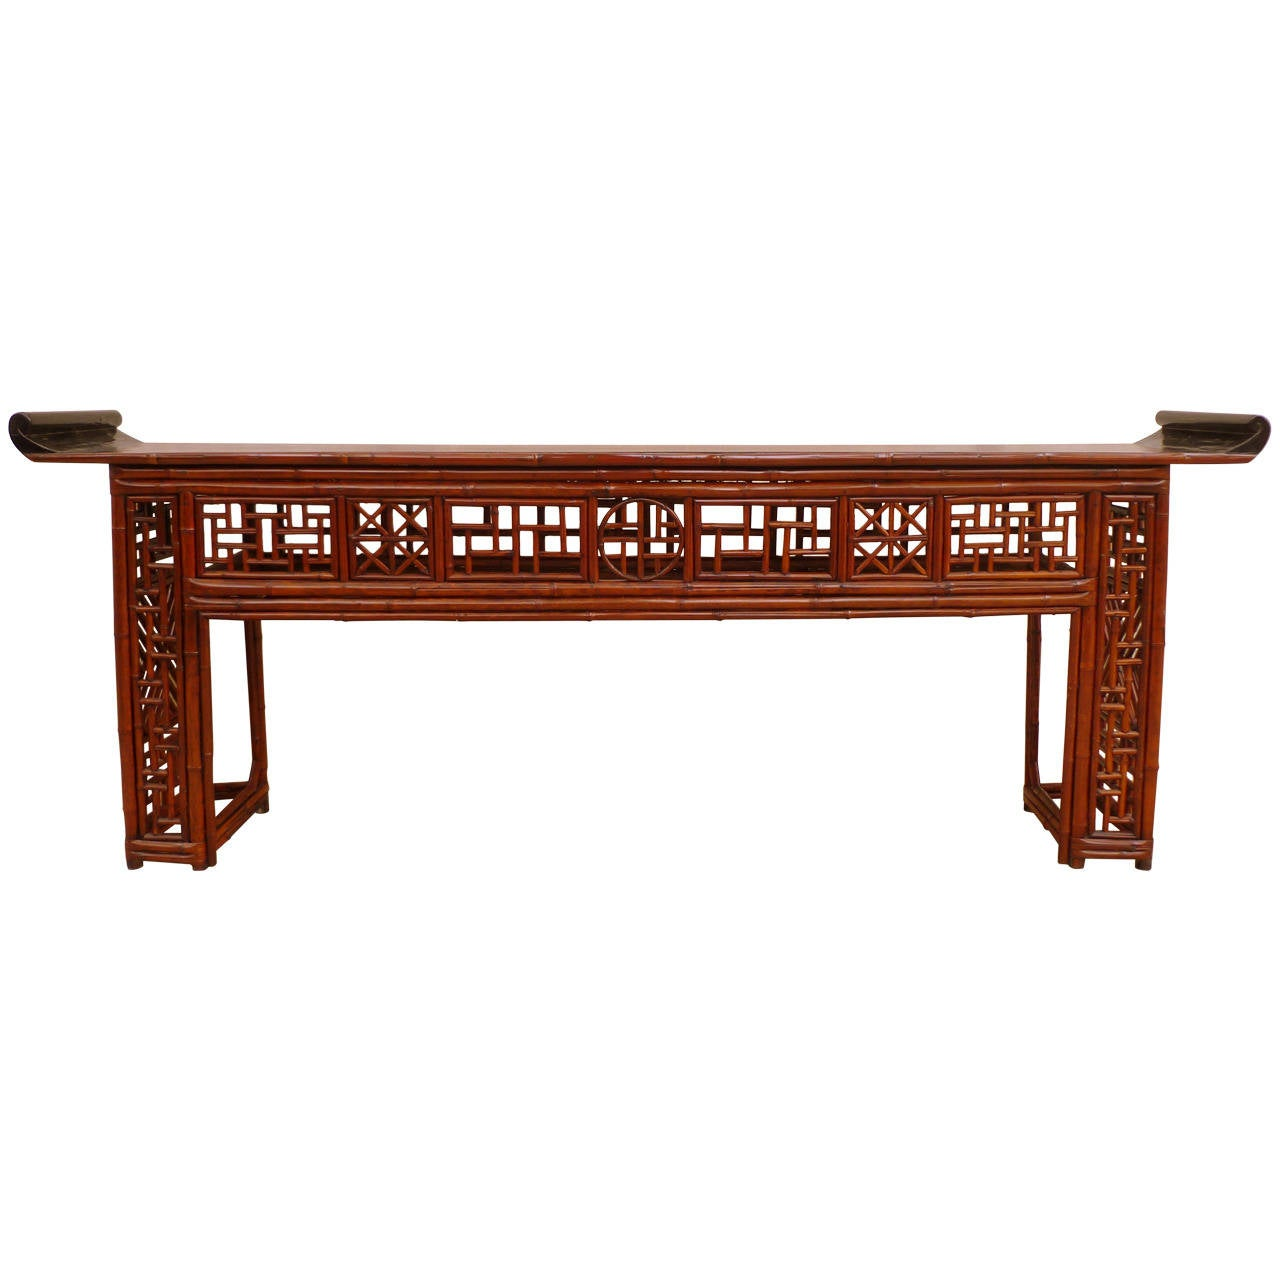 Console Table with Lacquer Top & Bamboo Fret Work